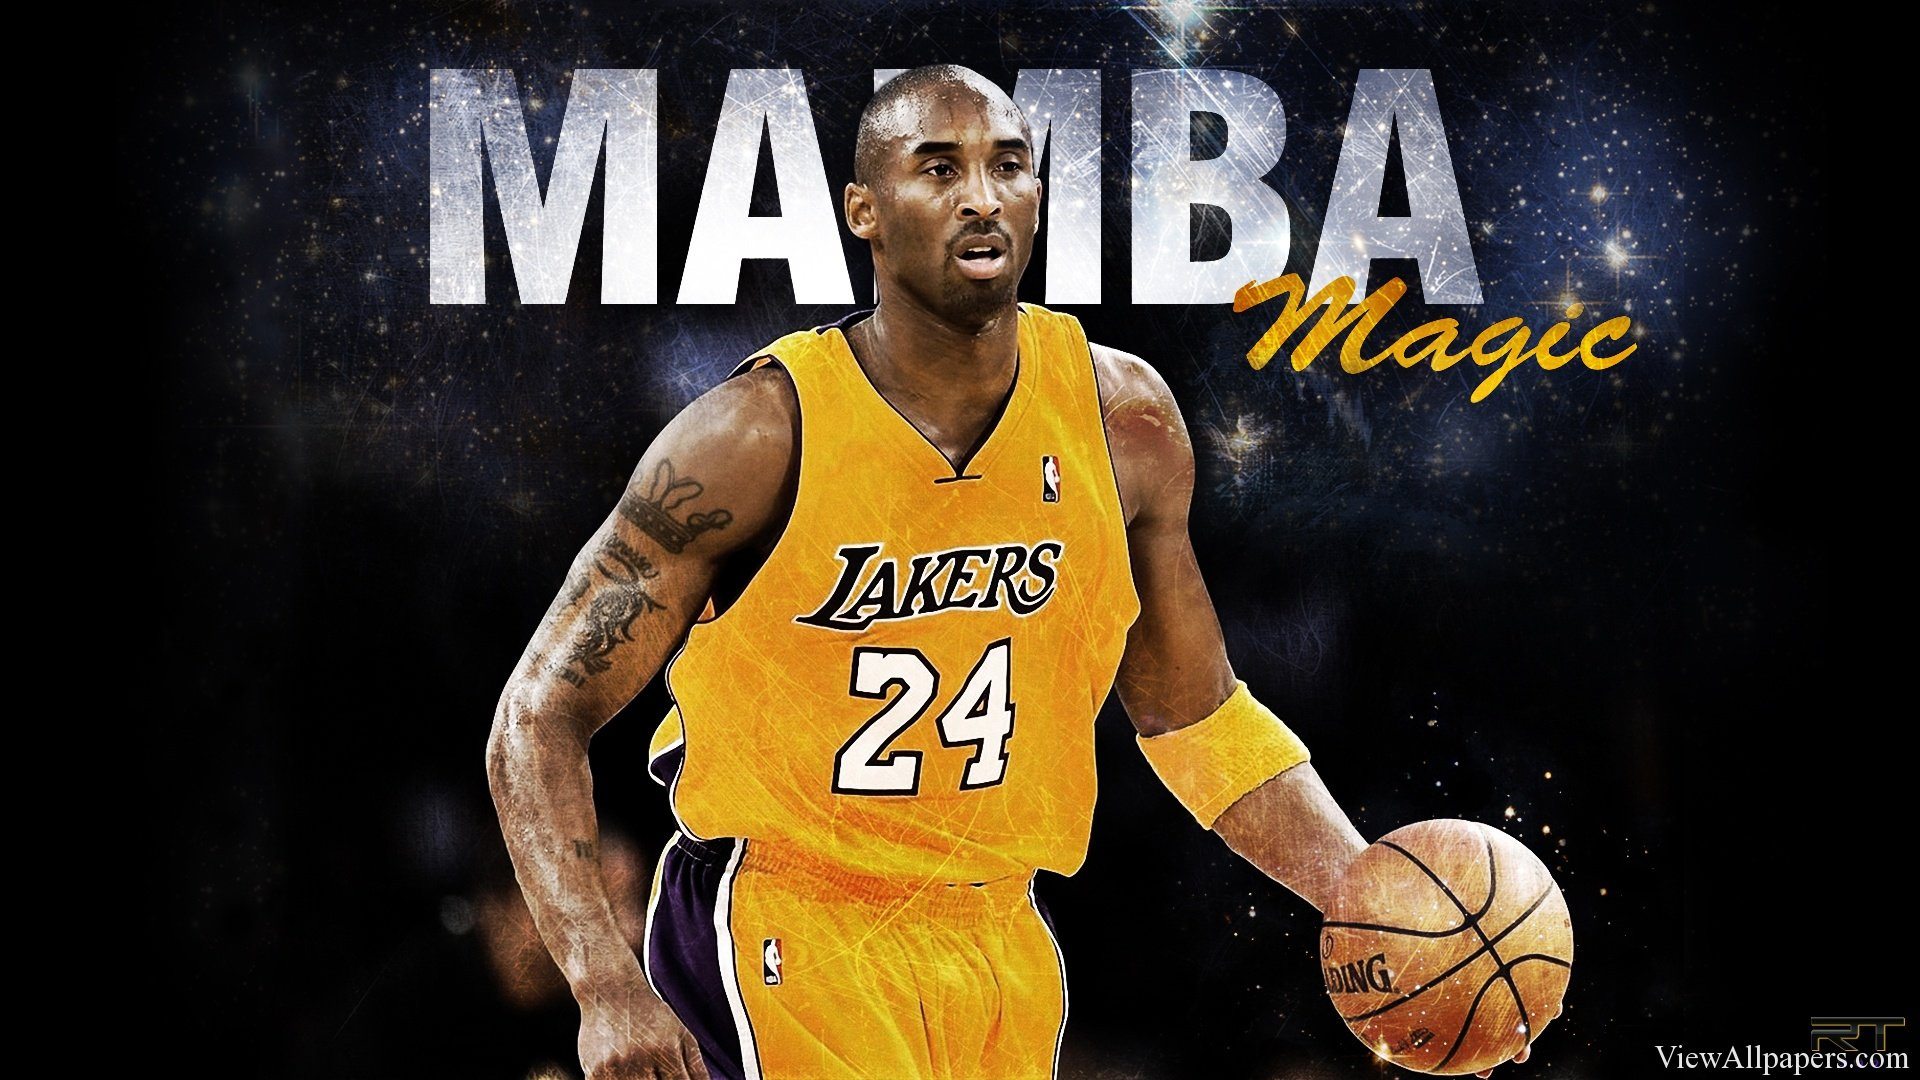 Kobe bryant wallpapers 2014 wallpapersafari - Kobe bryant wallpaper free download ...